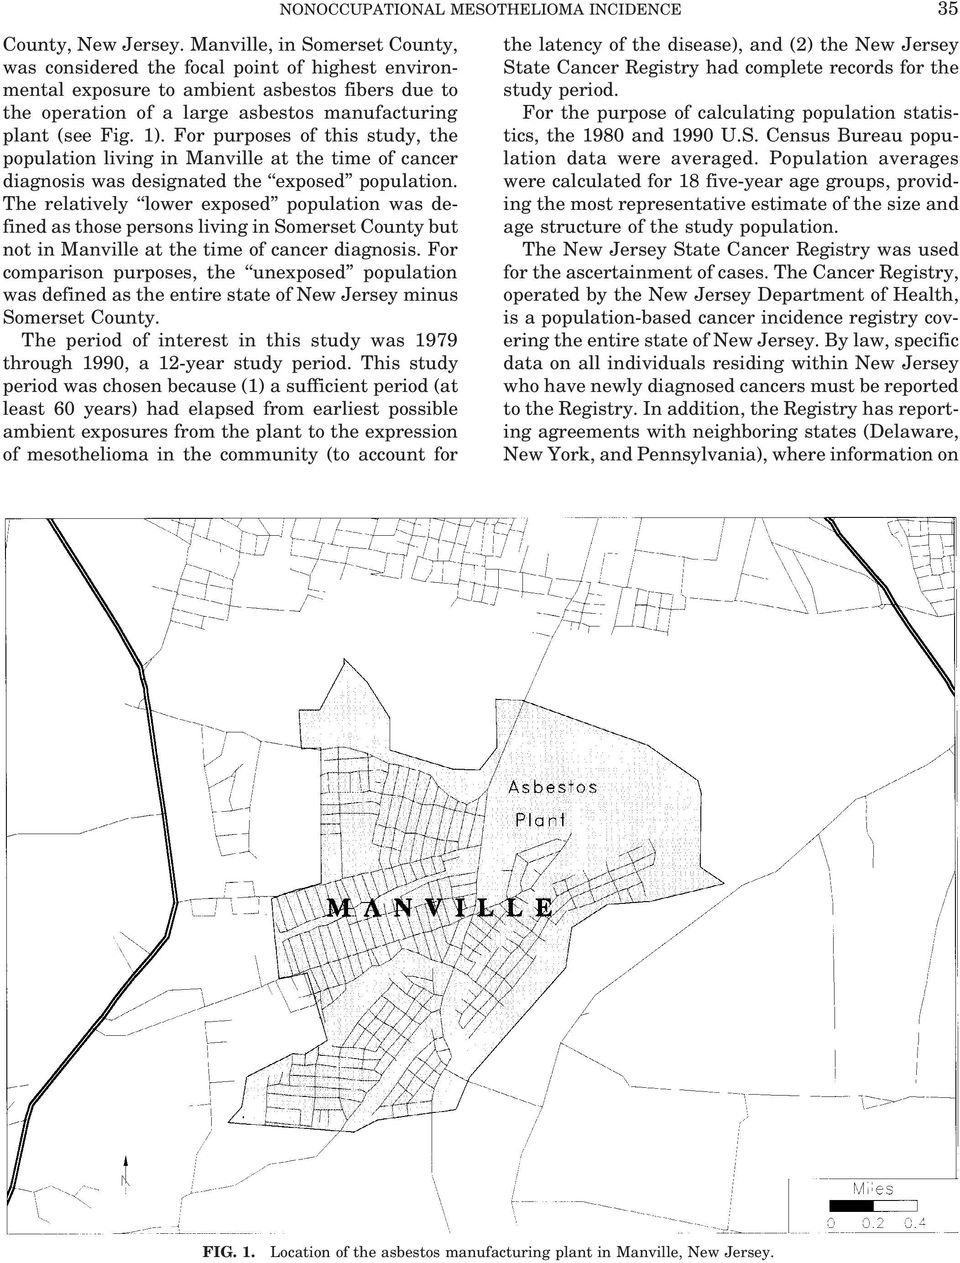 For purposes of this study, the population living in Manville at the time of cancer diagnosis was designated the exposed population.